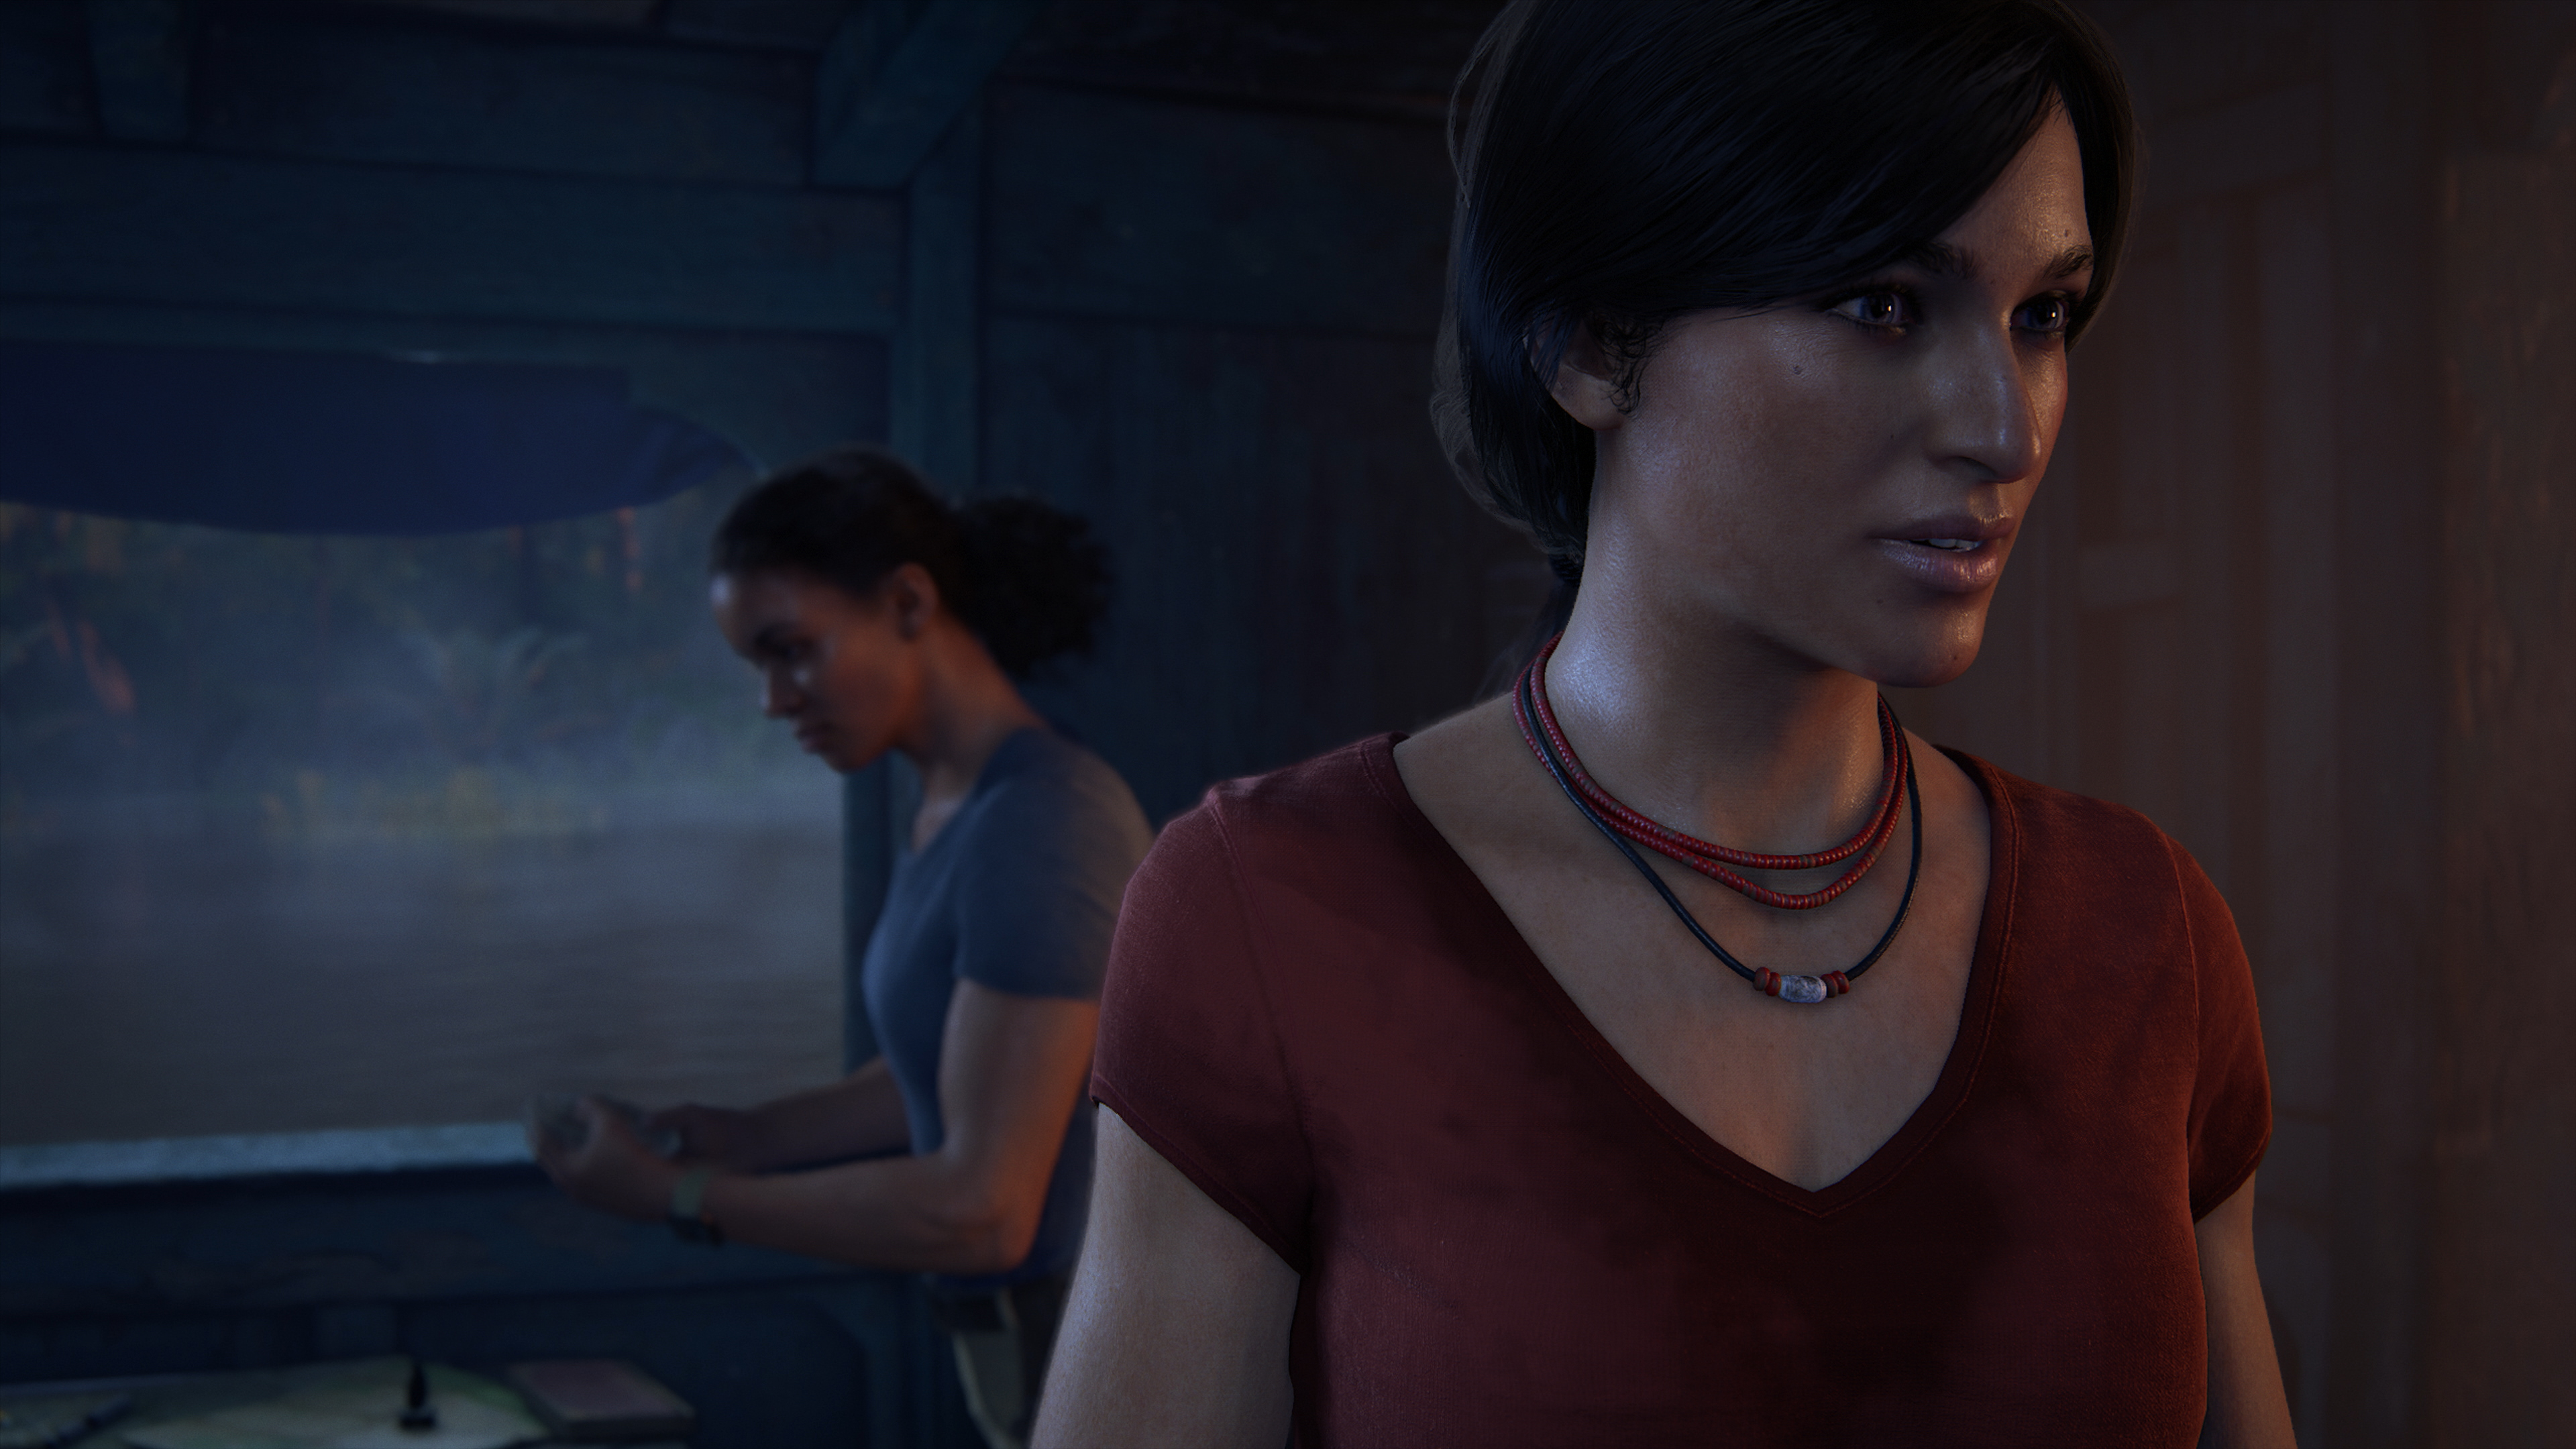 'Bom tấn' Uncharted: The Lost Legacy tung trailer mới, ra mắt trong tháng 8